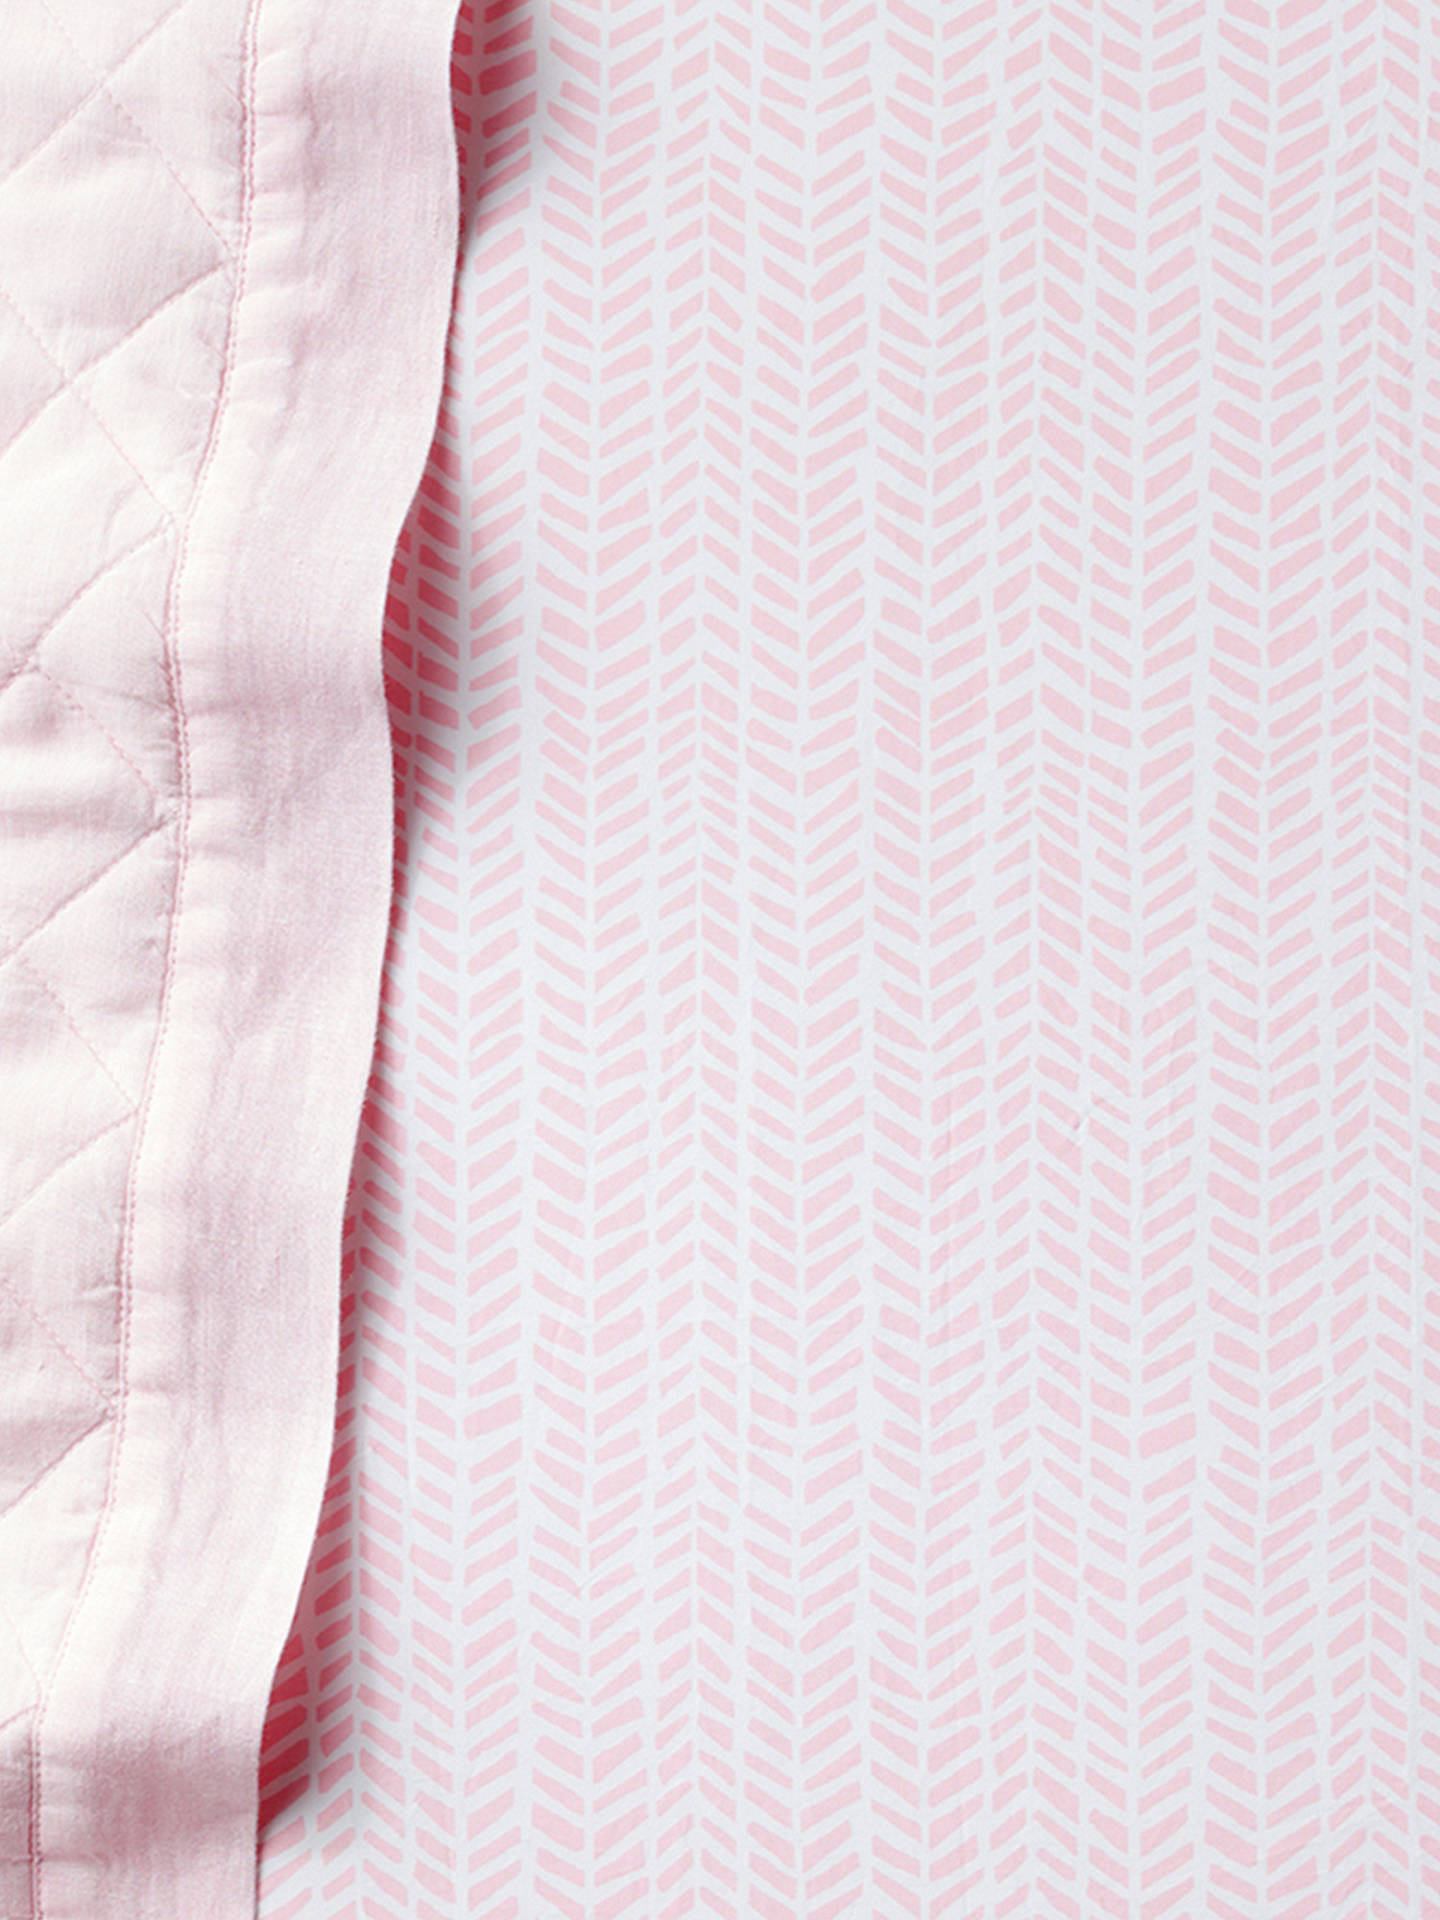 BuyPottery Barn Kids Arrow Print Fitted Cot Sheet, 70 x 132cm, Pink Online at johnlewis.com